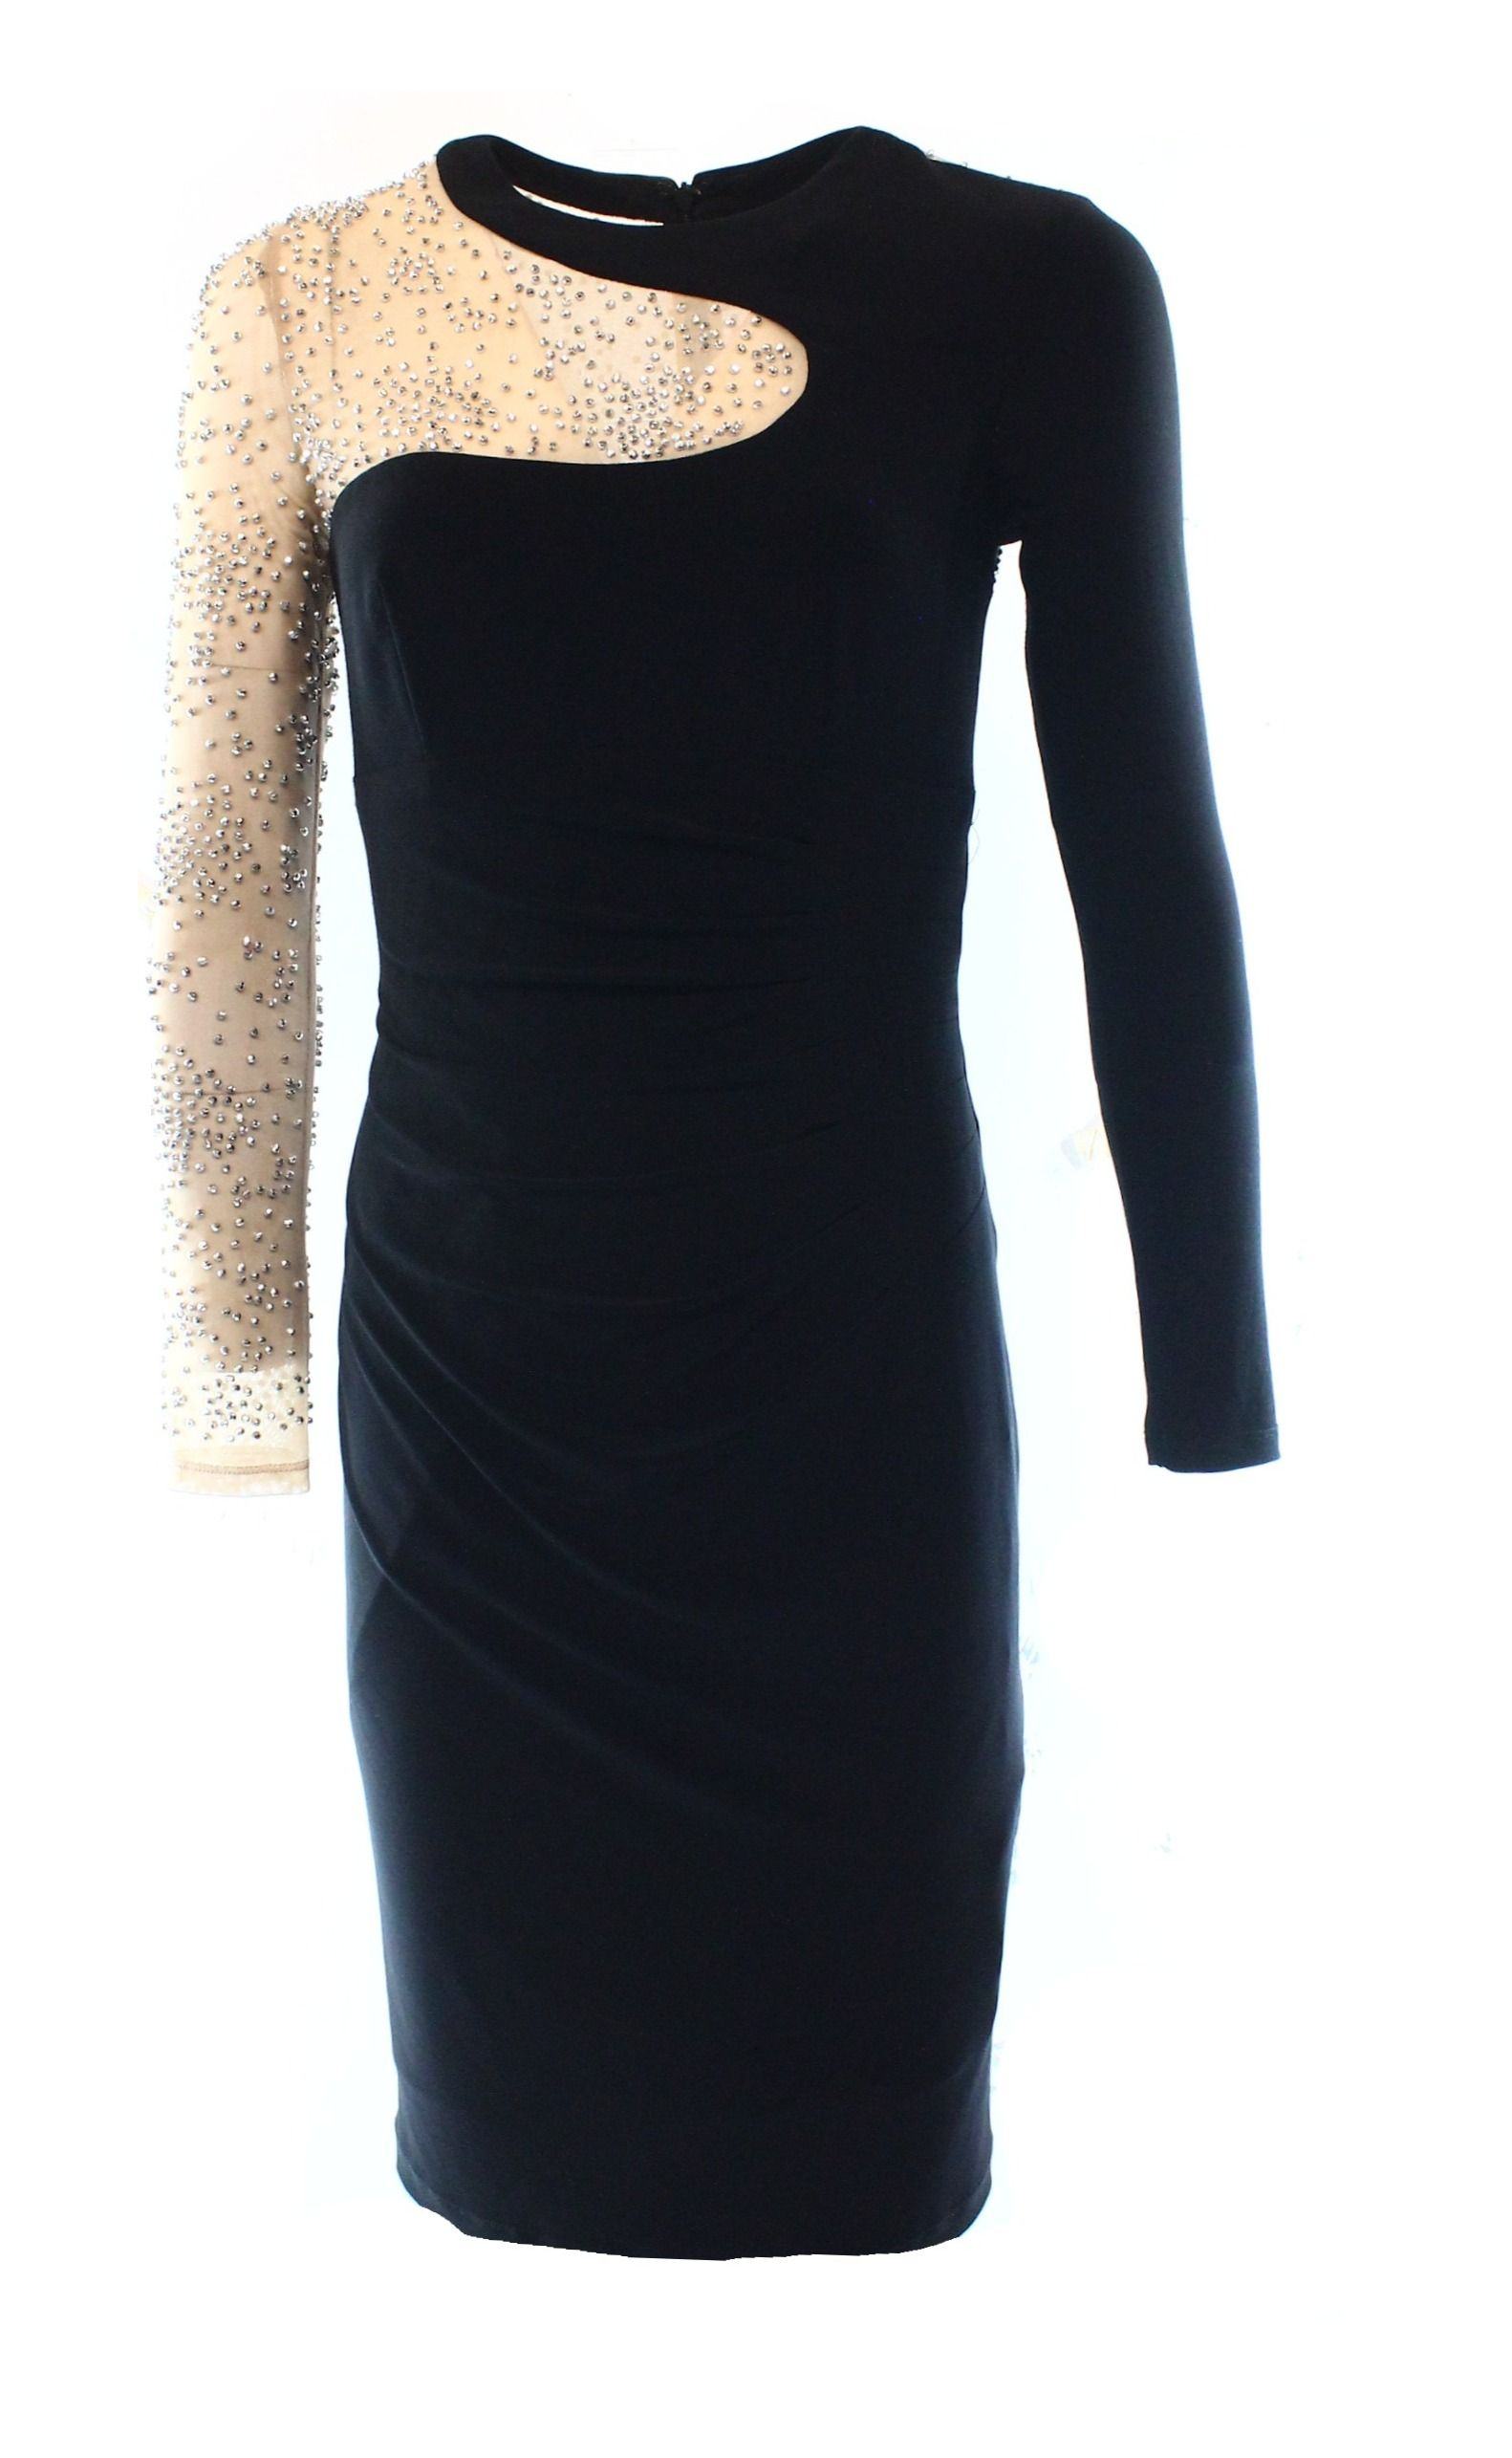 Xscape new black nude womenus embellished mesh illusion sheath